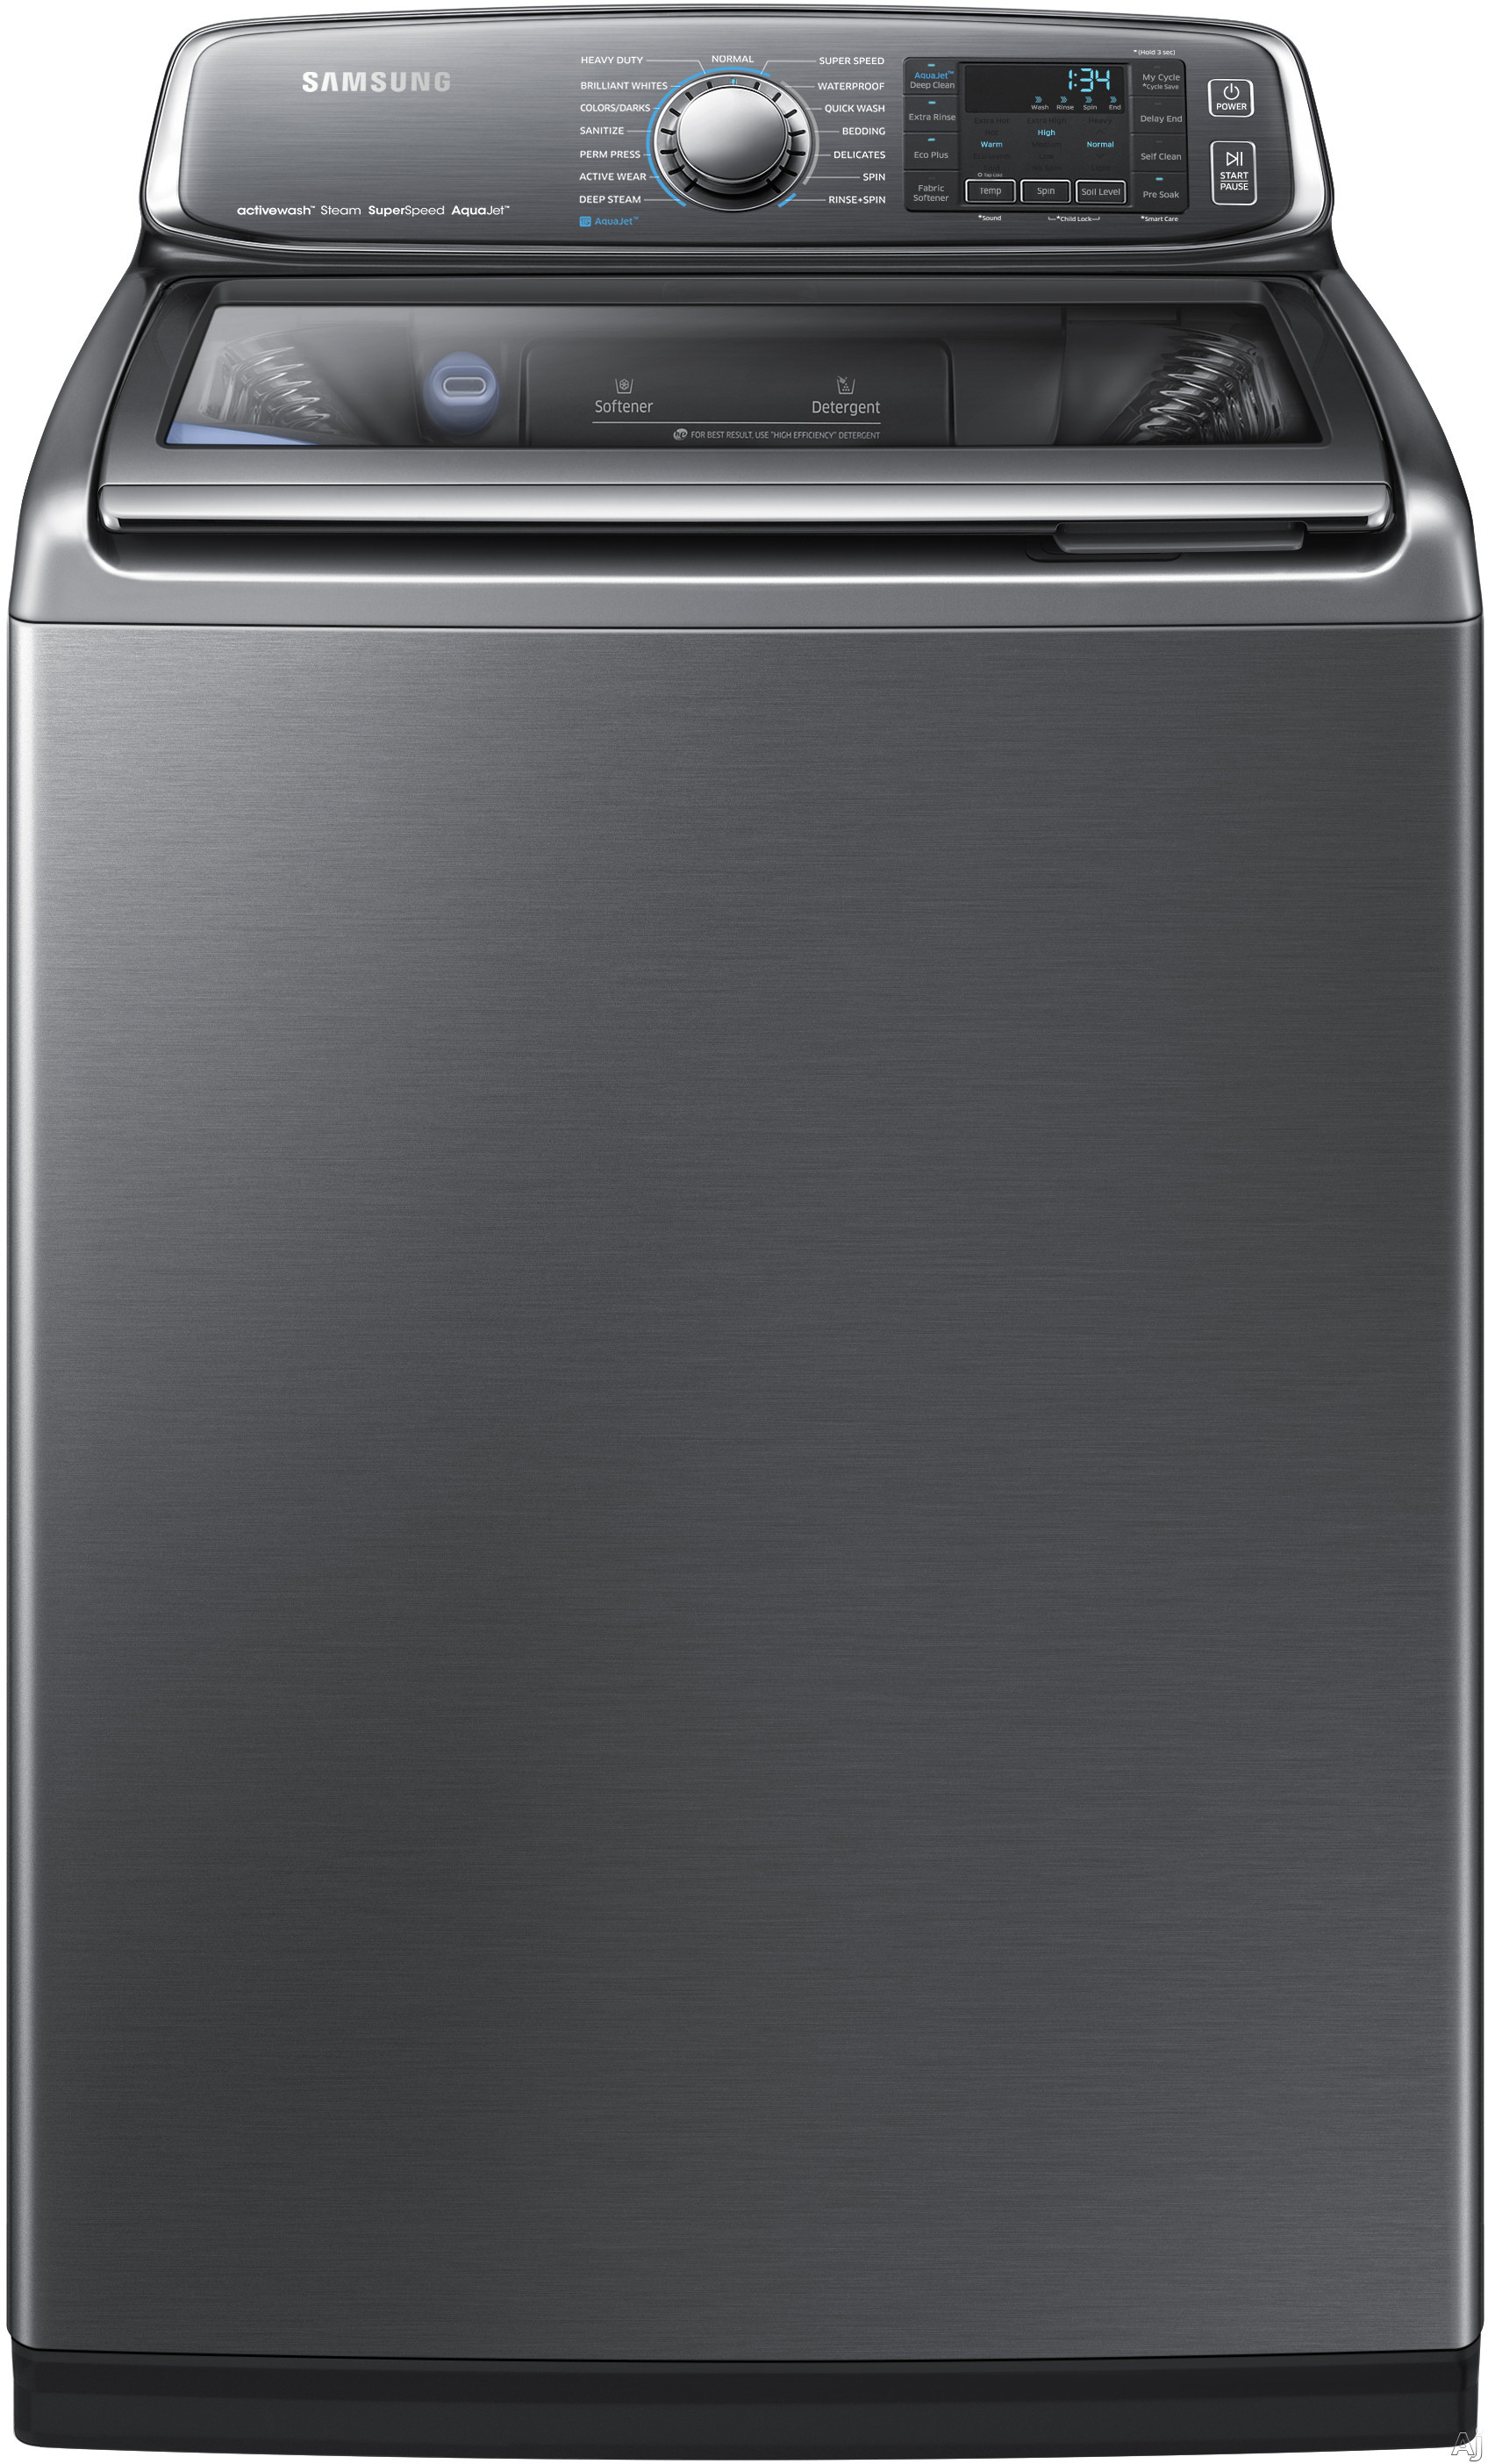 Samsung WA52J8700A 27 Inch 5.2 cu. ft. Top Load Washer with 15 Wash Cycles, 1,100 RPM, Steam, SuperSpeed Cycle, Sanitize Wash Cycles, activewash, AquaJet Deep Clean, Vibration Reduction Technology, Self Clean and ENERGY STAR Certification WA52J8700A